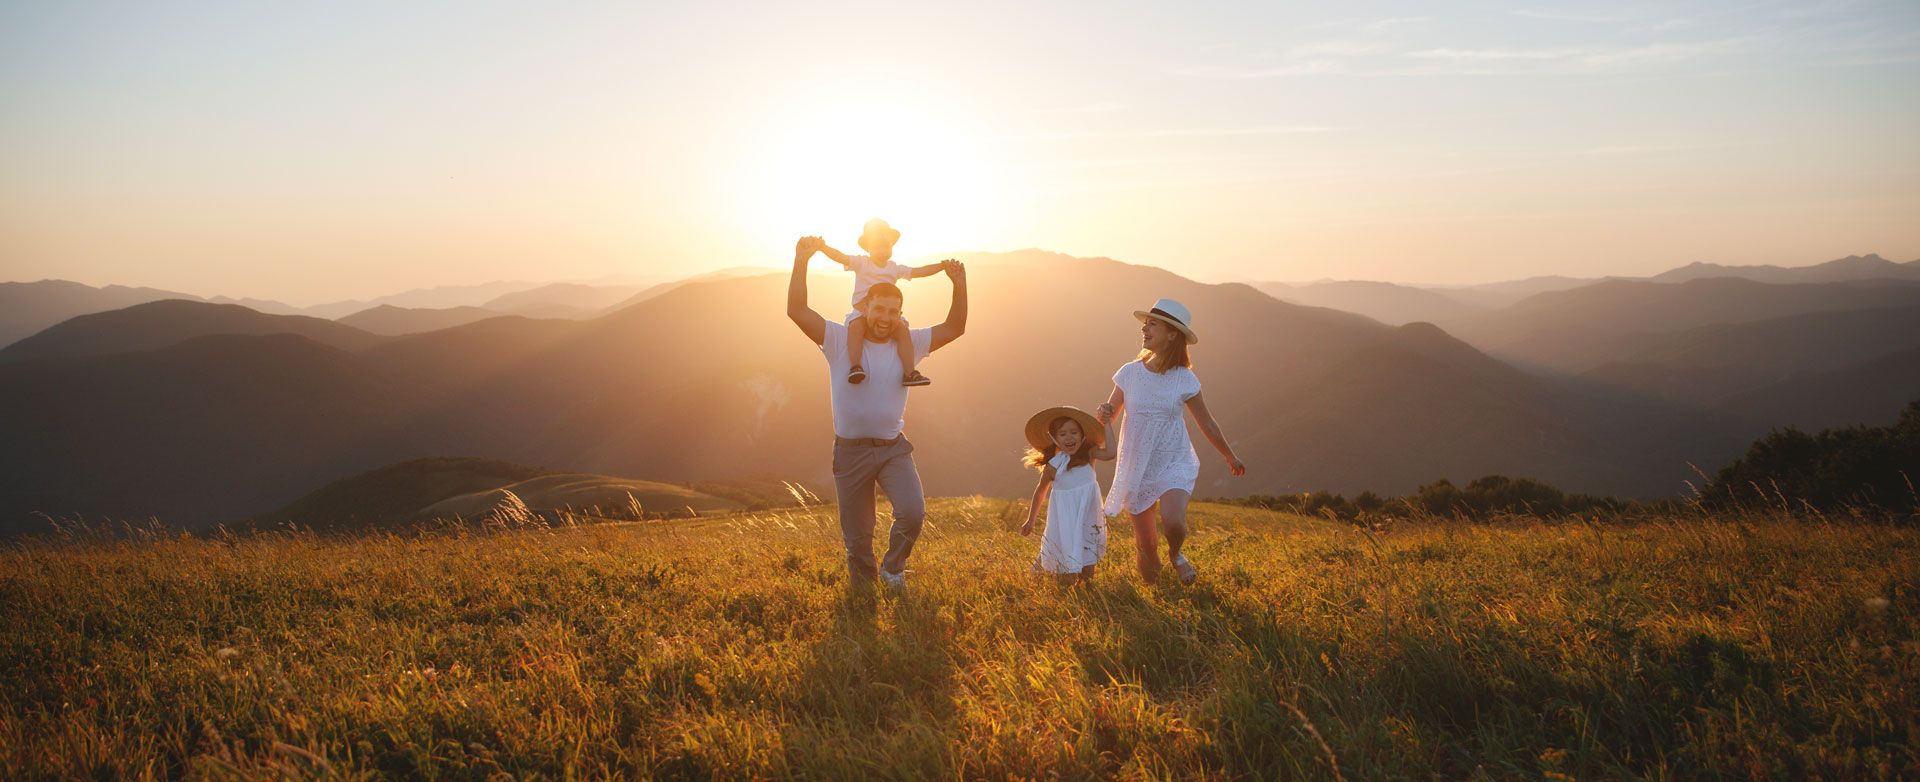 Family hiking in a field with mountains